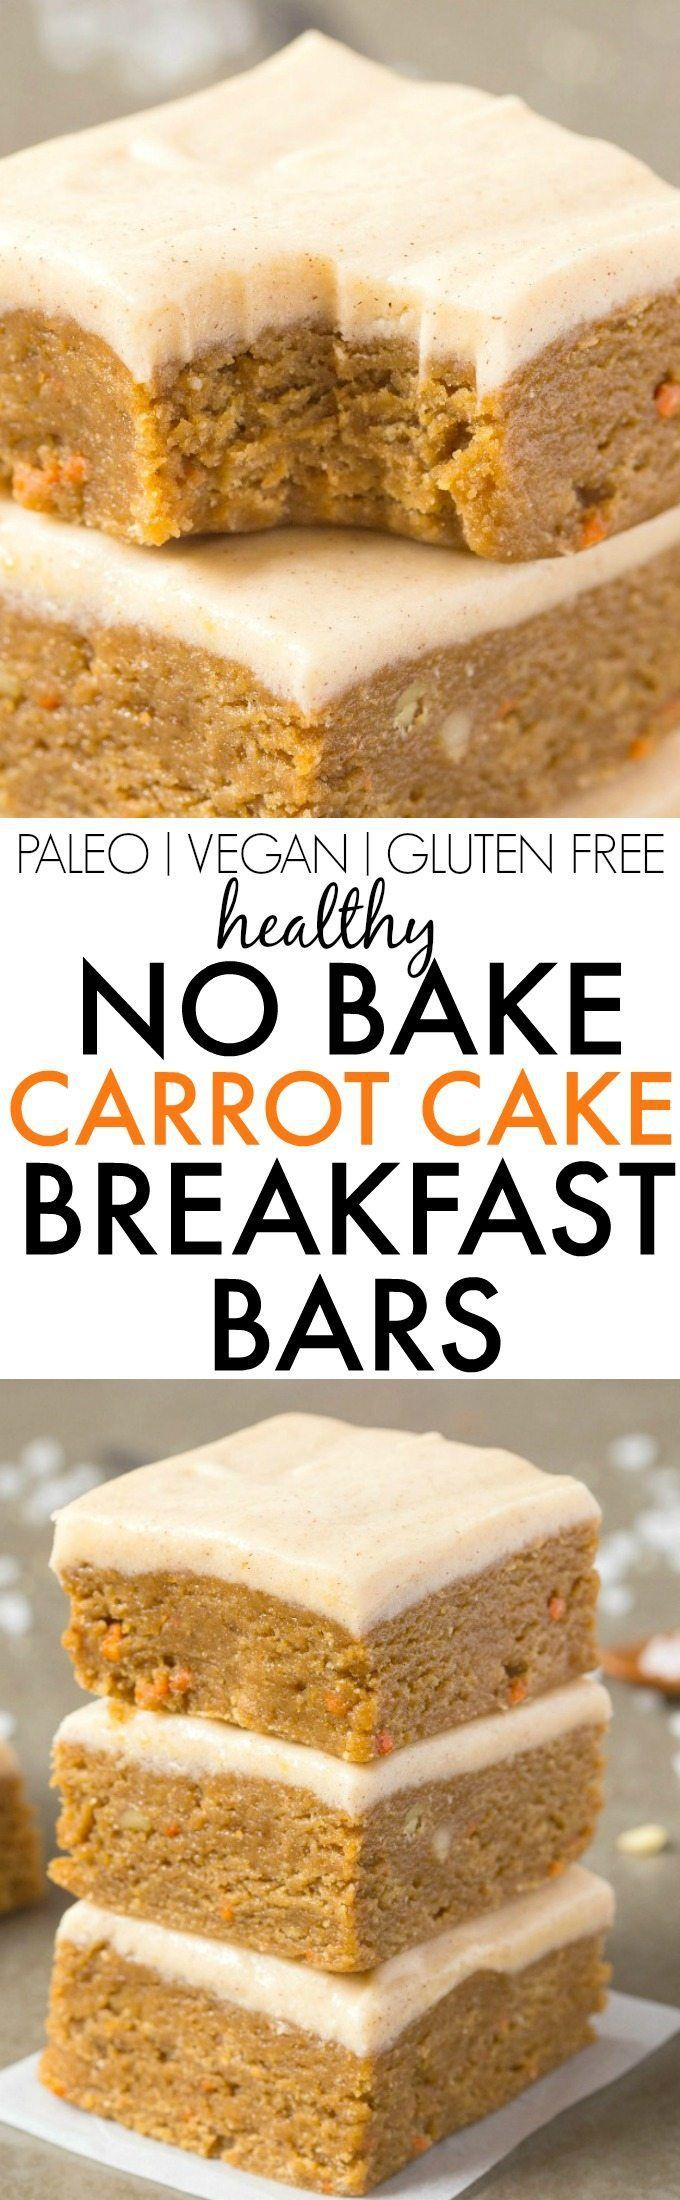 Healthy No Bake Carrot Cake BREAKFAST Bars- Thick, chewy, fudgy and ready in no time, these delicious bars contain NO butter, oil, flour or white sugar, but taste like dessert! Packed with protein freezer friendly! {Vegan, gluten free, paleo recipe}- theb http://healthyquickly.com/5-essential-healthy-breakfast-tips-for-easy-fat-burning/